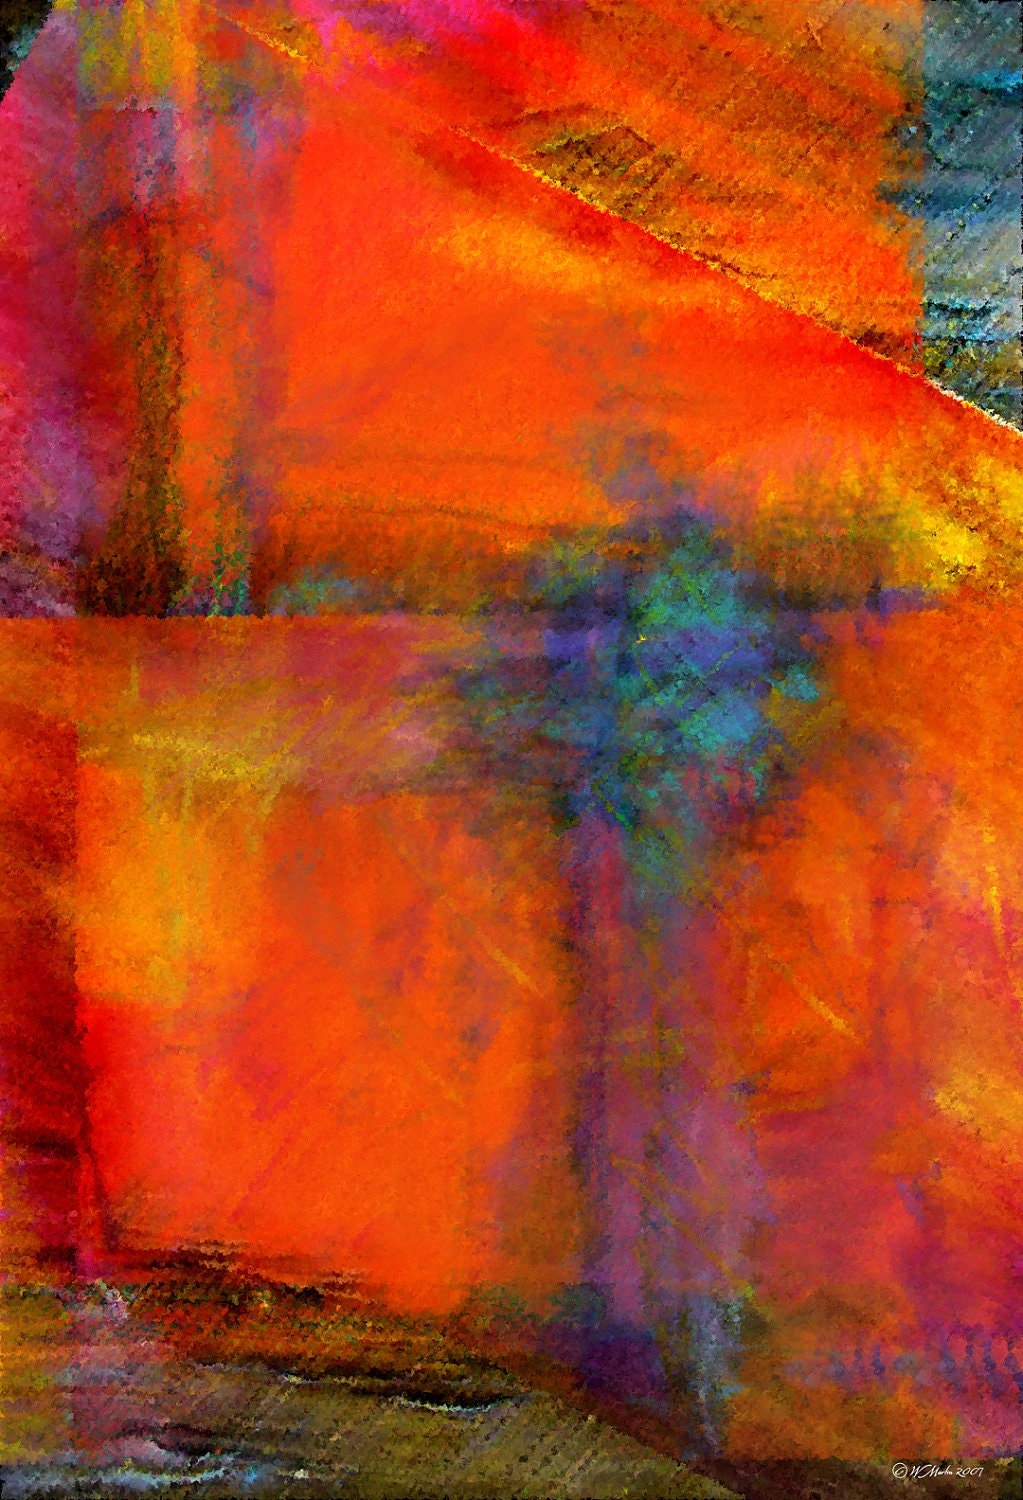 orange abstract painting abstract art digital painting